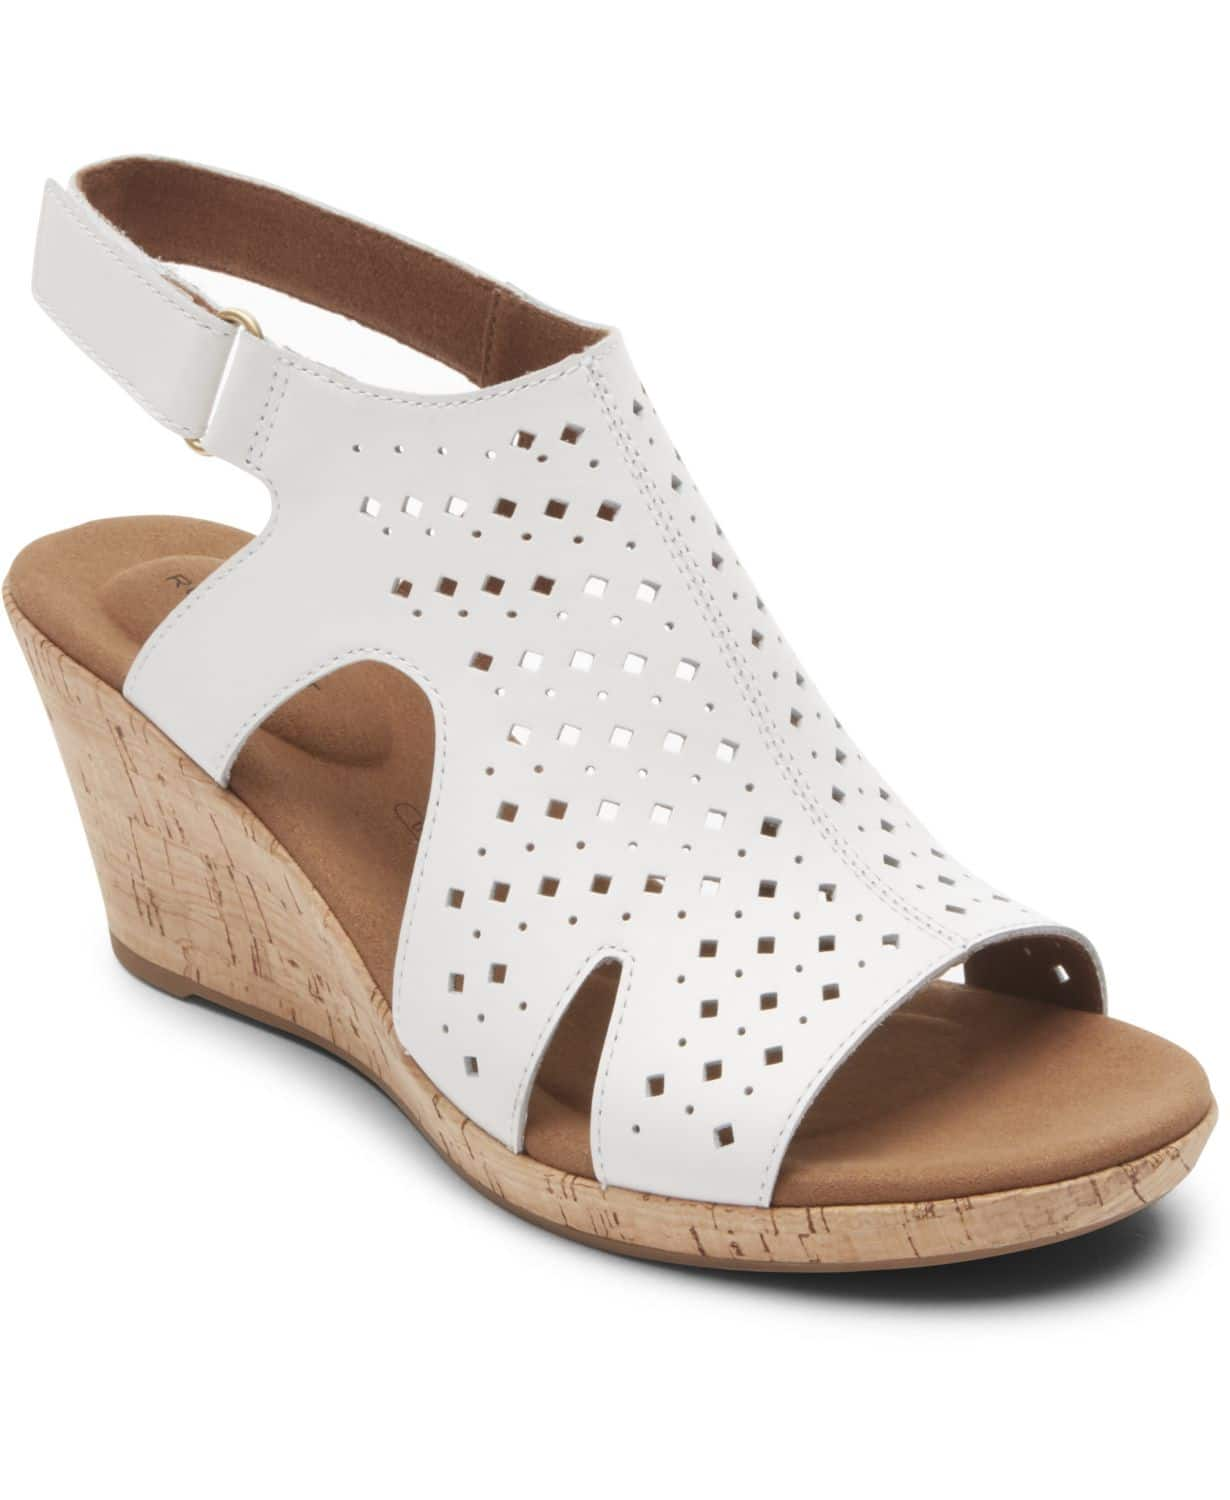 Macy's Womens Sandal Clearance: Rockport Briah Wedges $25, Lucky Brand Gabrien Wedges $20, DKNY Cat Espadrille $30 & More + Free S&H on $25+